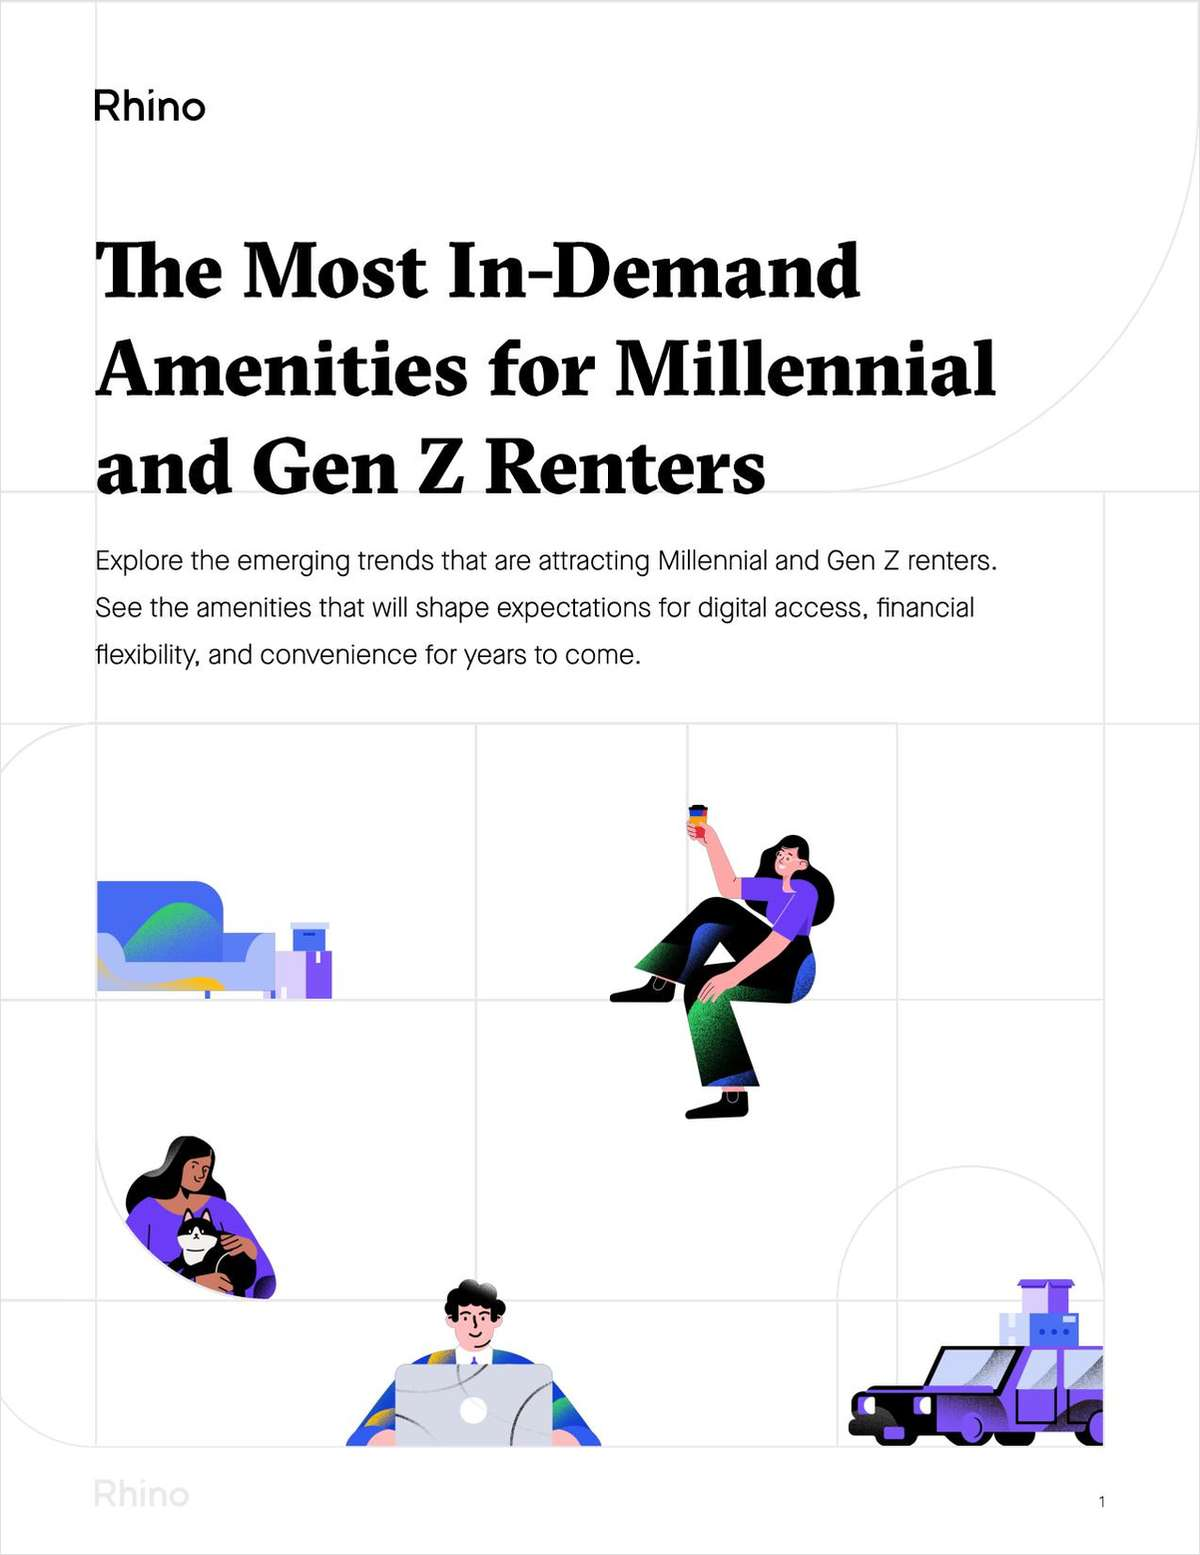 The Most In-Demand Amenities for Millennial and Gen Z Renters